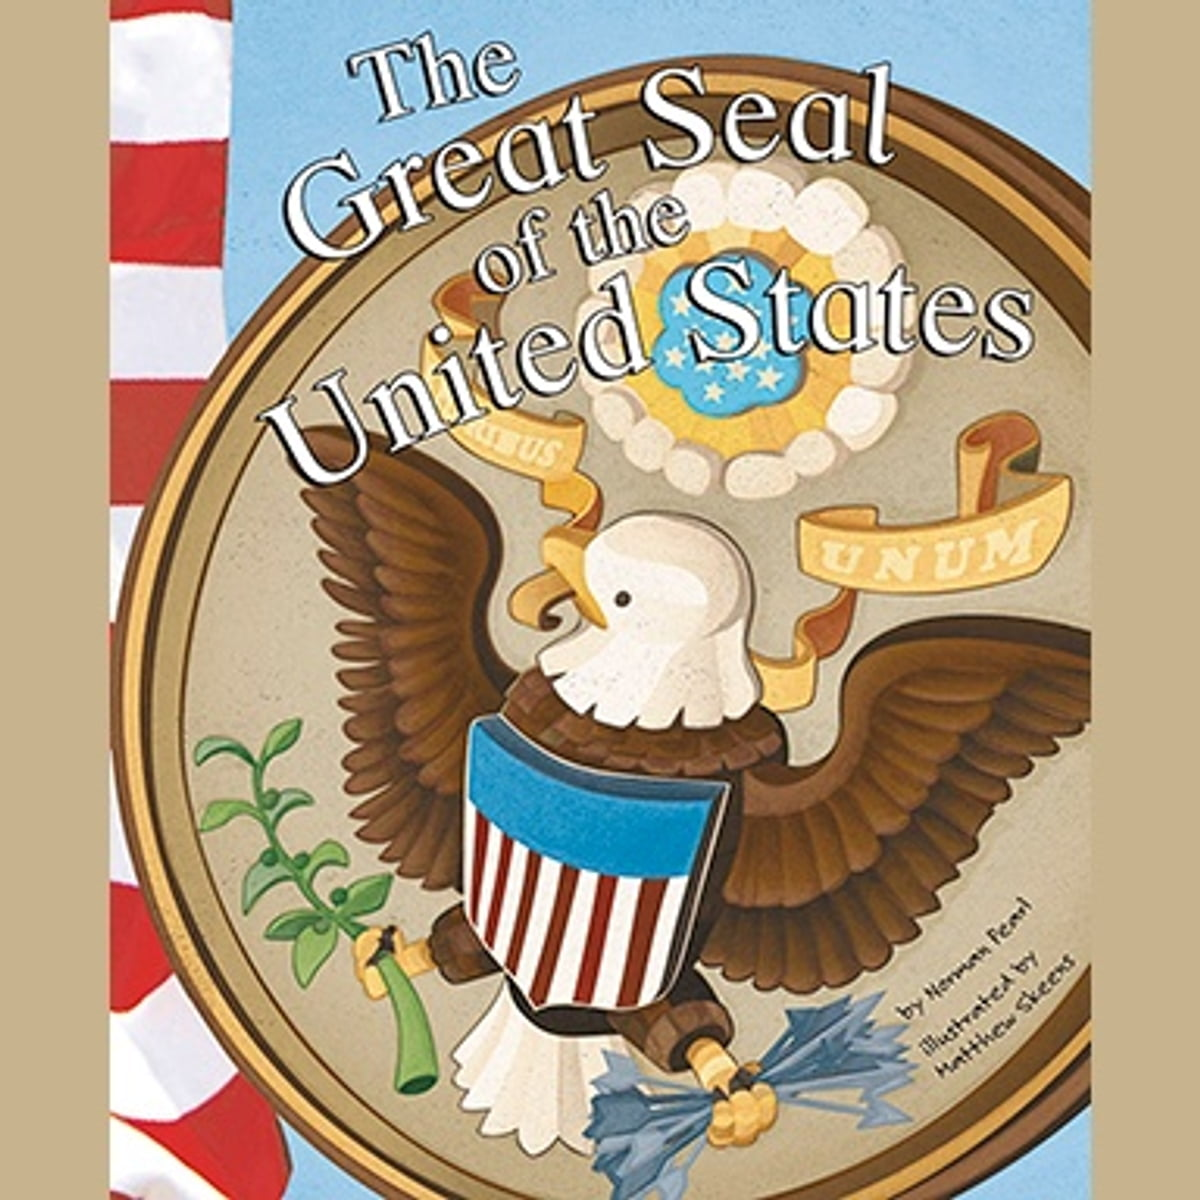 e6ab66319 Great Seal of the United States, The Audiobook by Norman Pearl -  9781479541409 | Rakuten Kobo